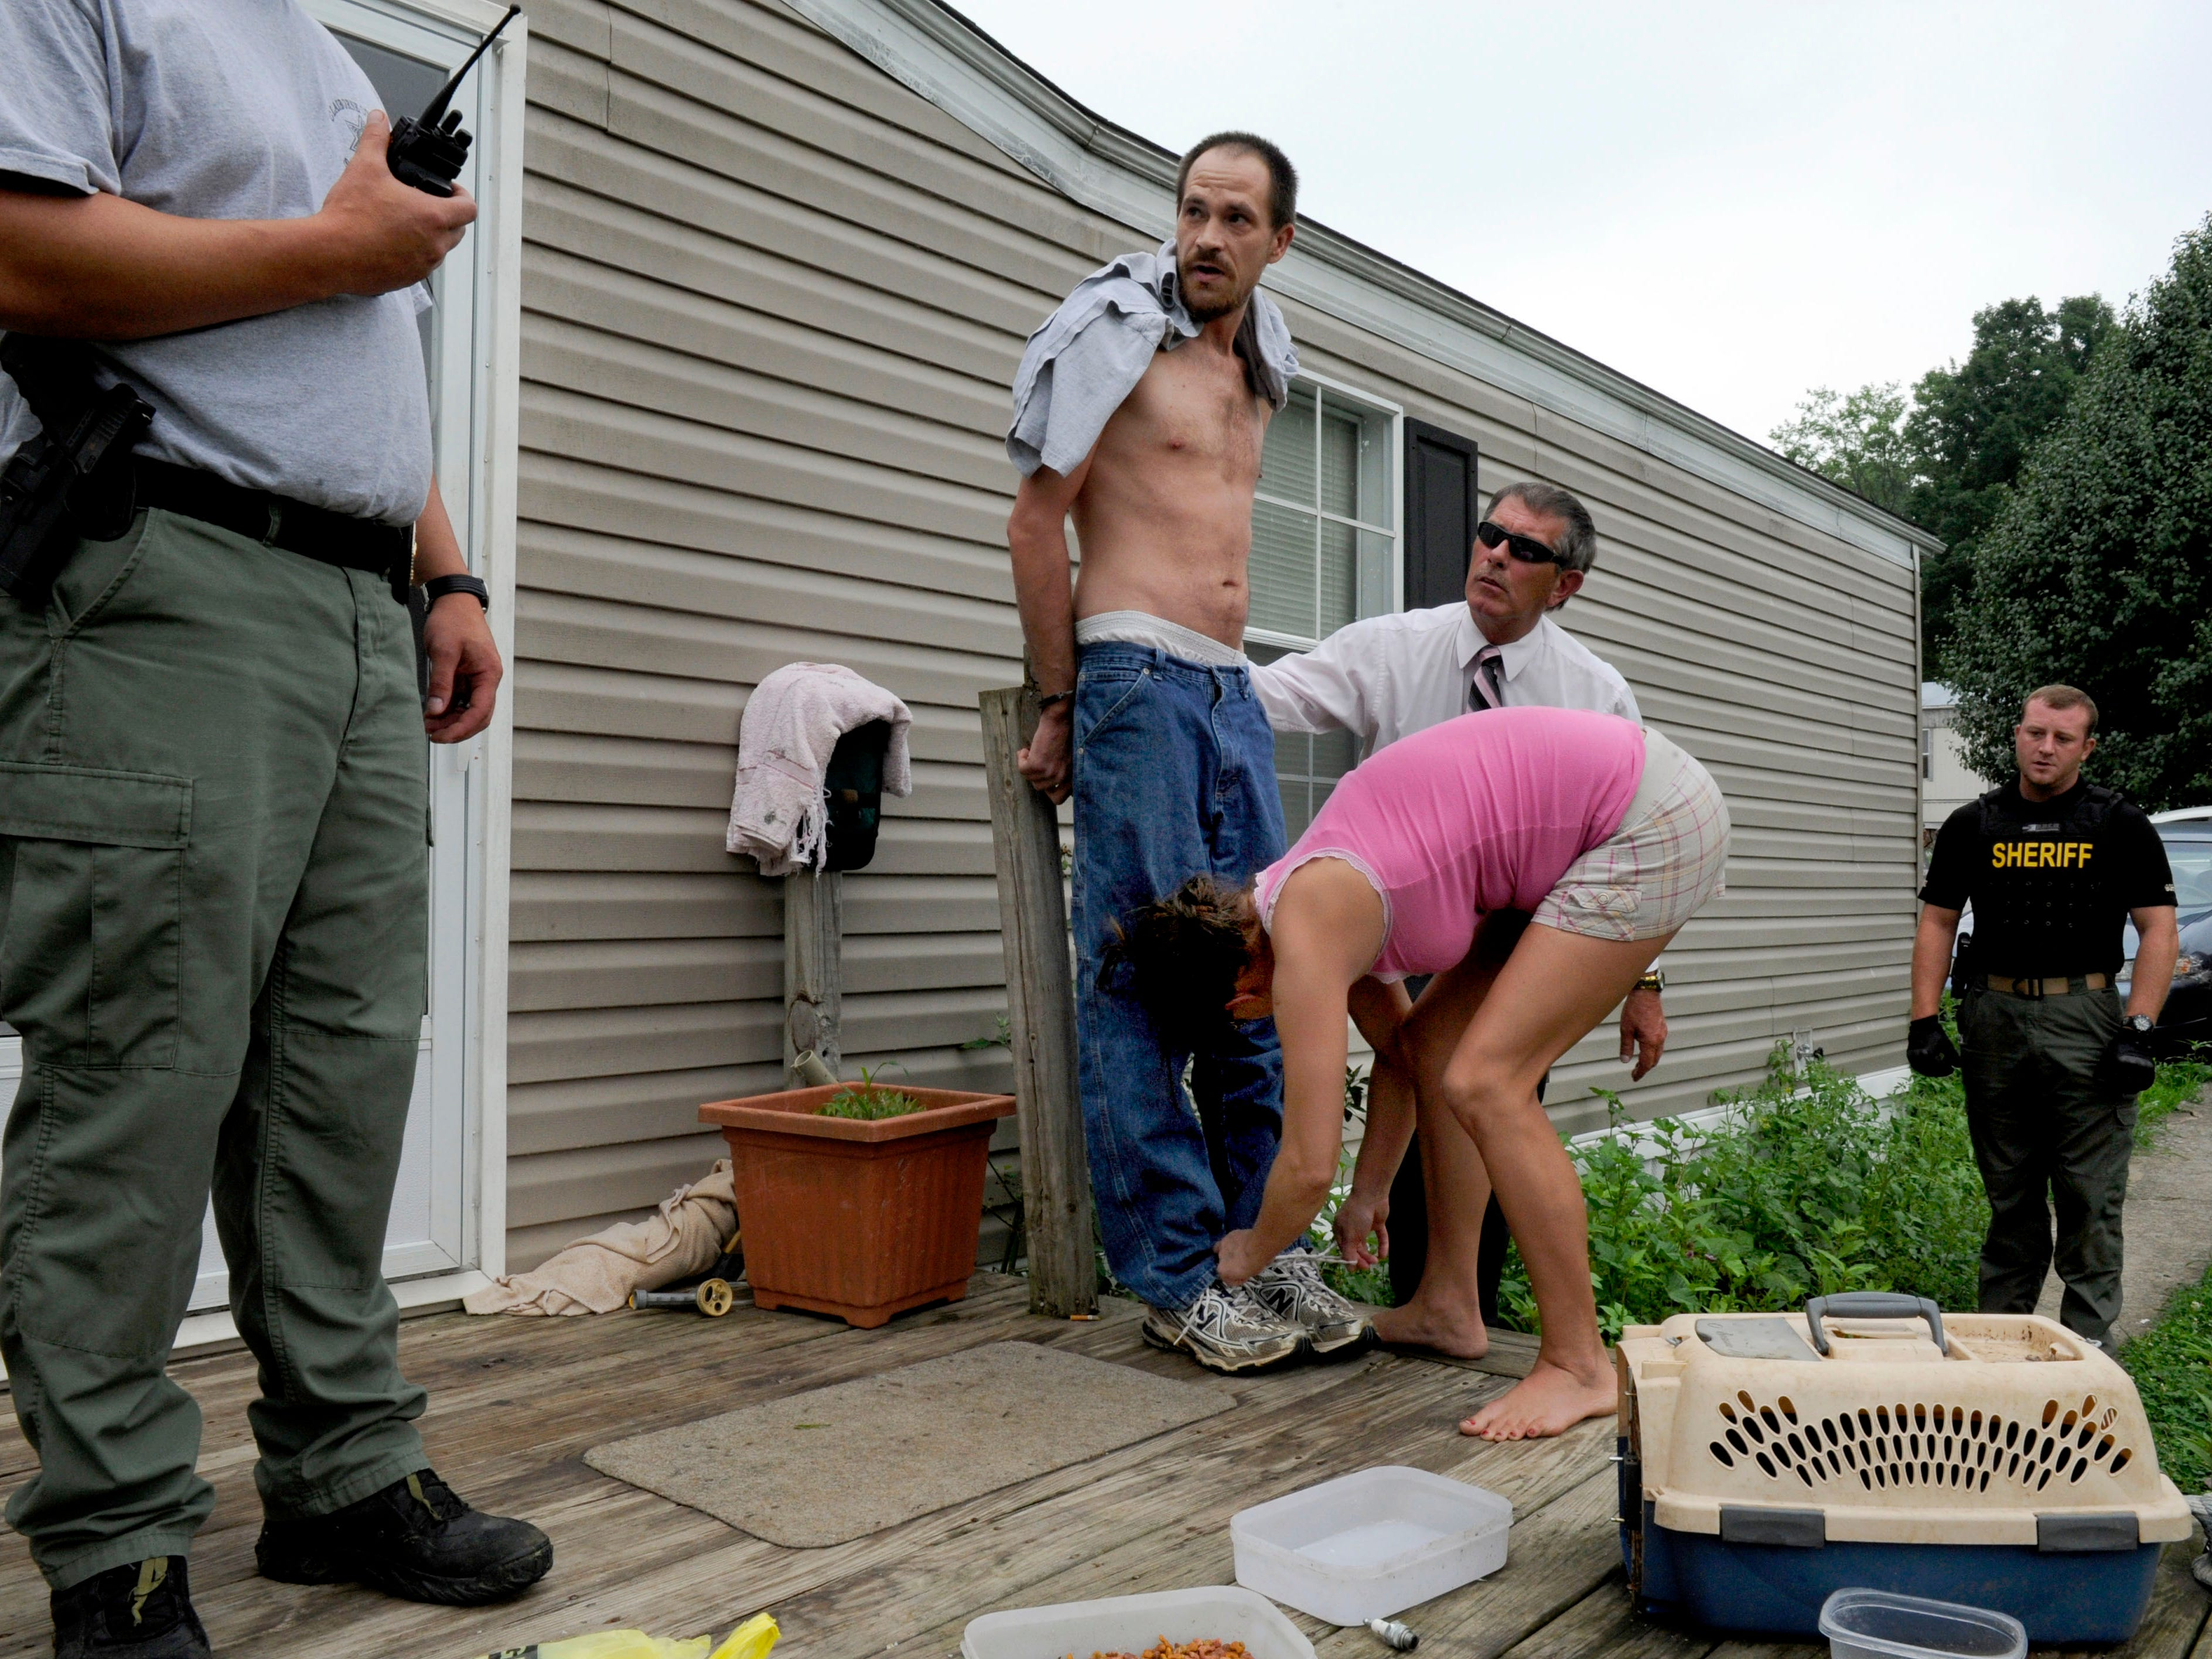 Chris Justice, center in handcuffs, listens to officers as his sister, Fallon Seals, puts on and ties his shoes on the front porch of his grandmother's home where he was arrested Wednesday, Jul. 20, 2011 for sale and delivery of a Schedule II drug following indictments from the Claiborne County grand jury.